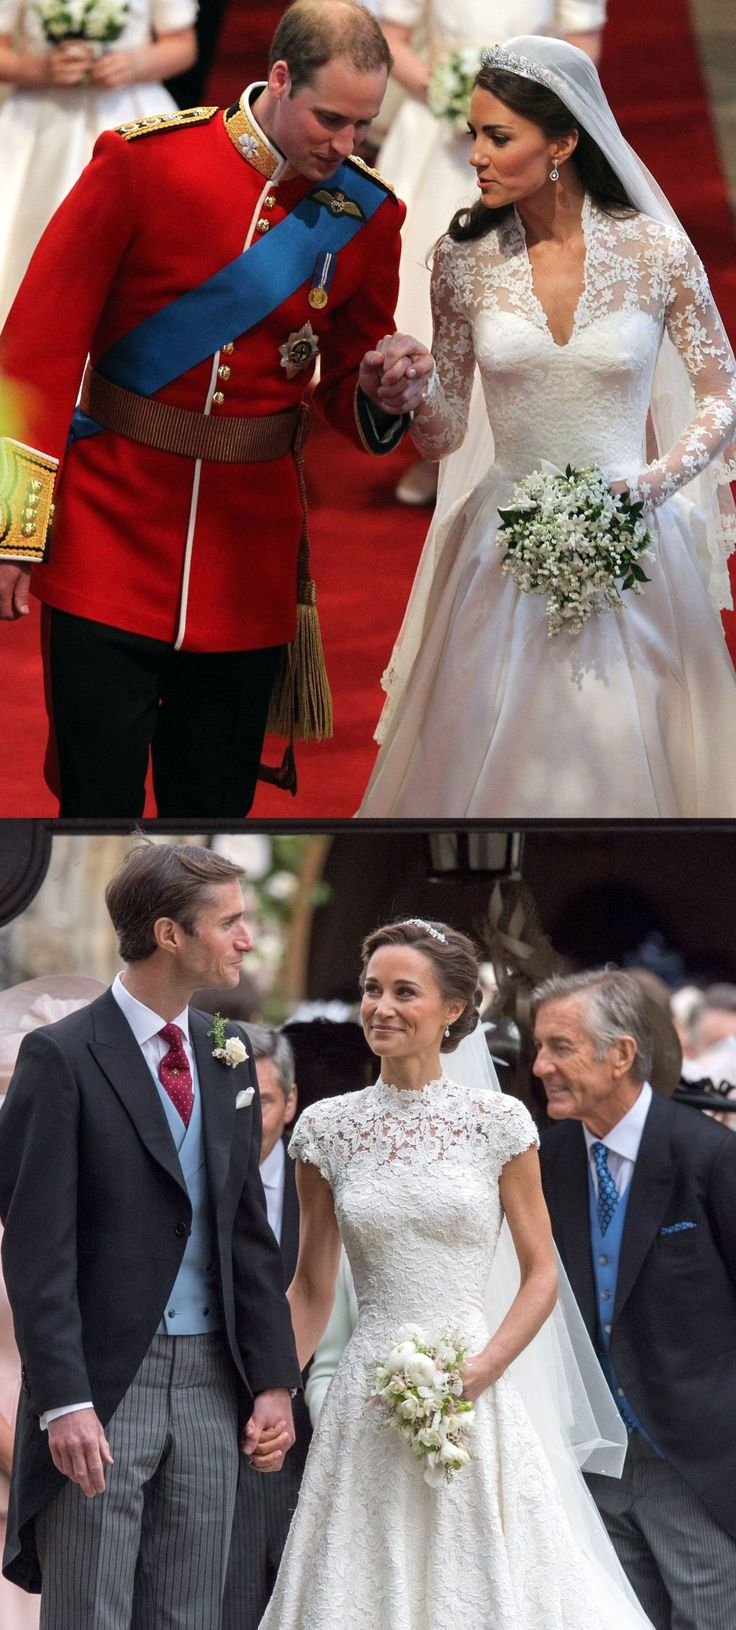 May 20, 2017 - Pippa Middleton's Wedding That Are Exactly the Same as Kate Middleton's Wedding - WomansDay.com